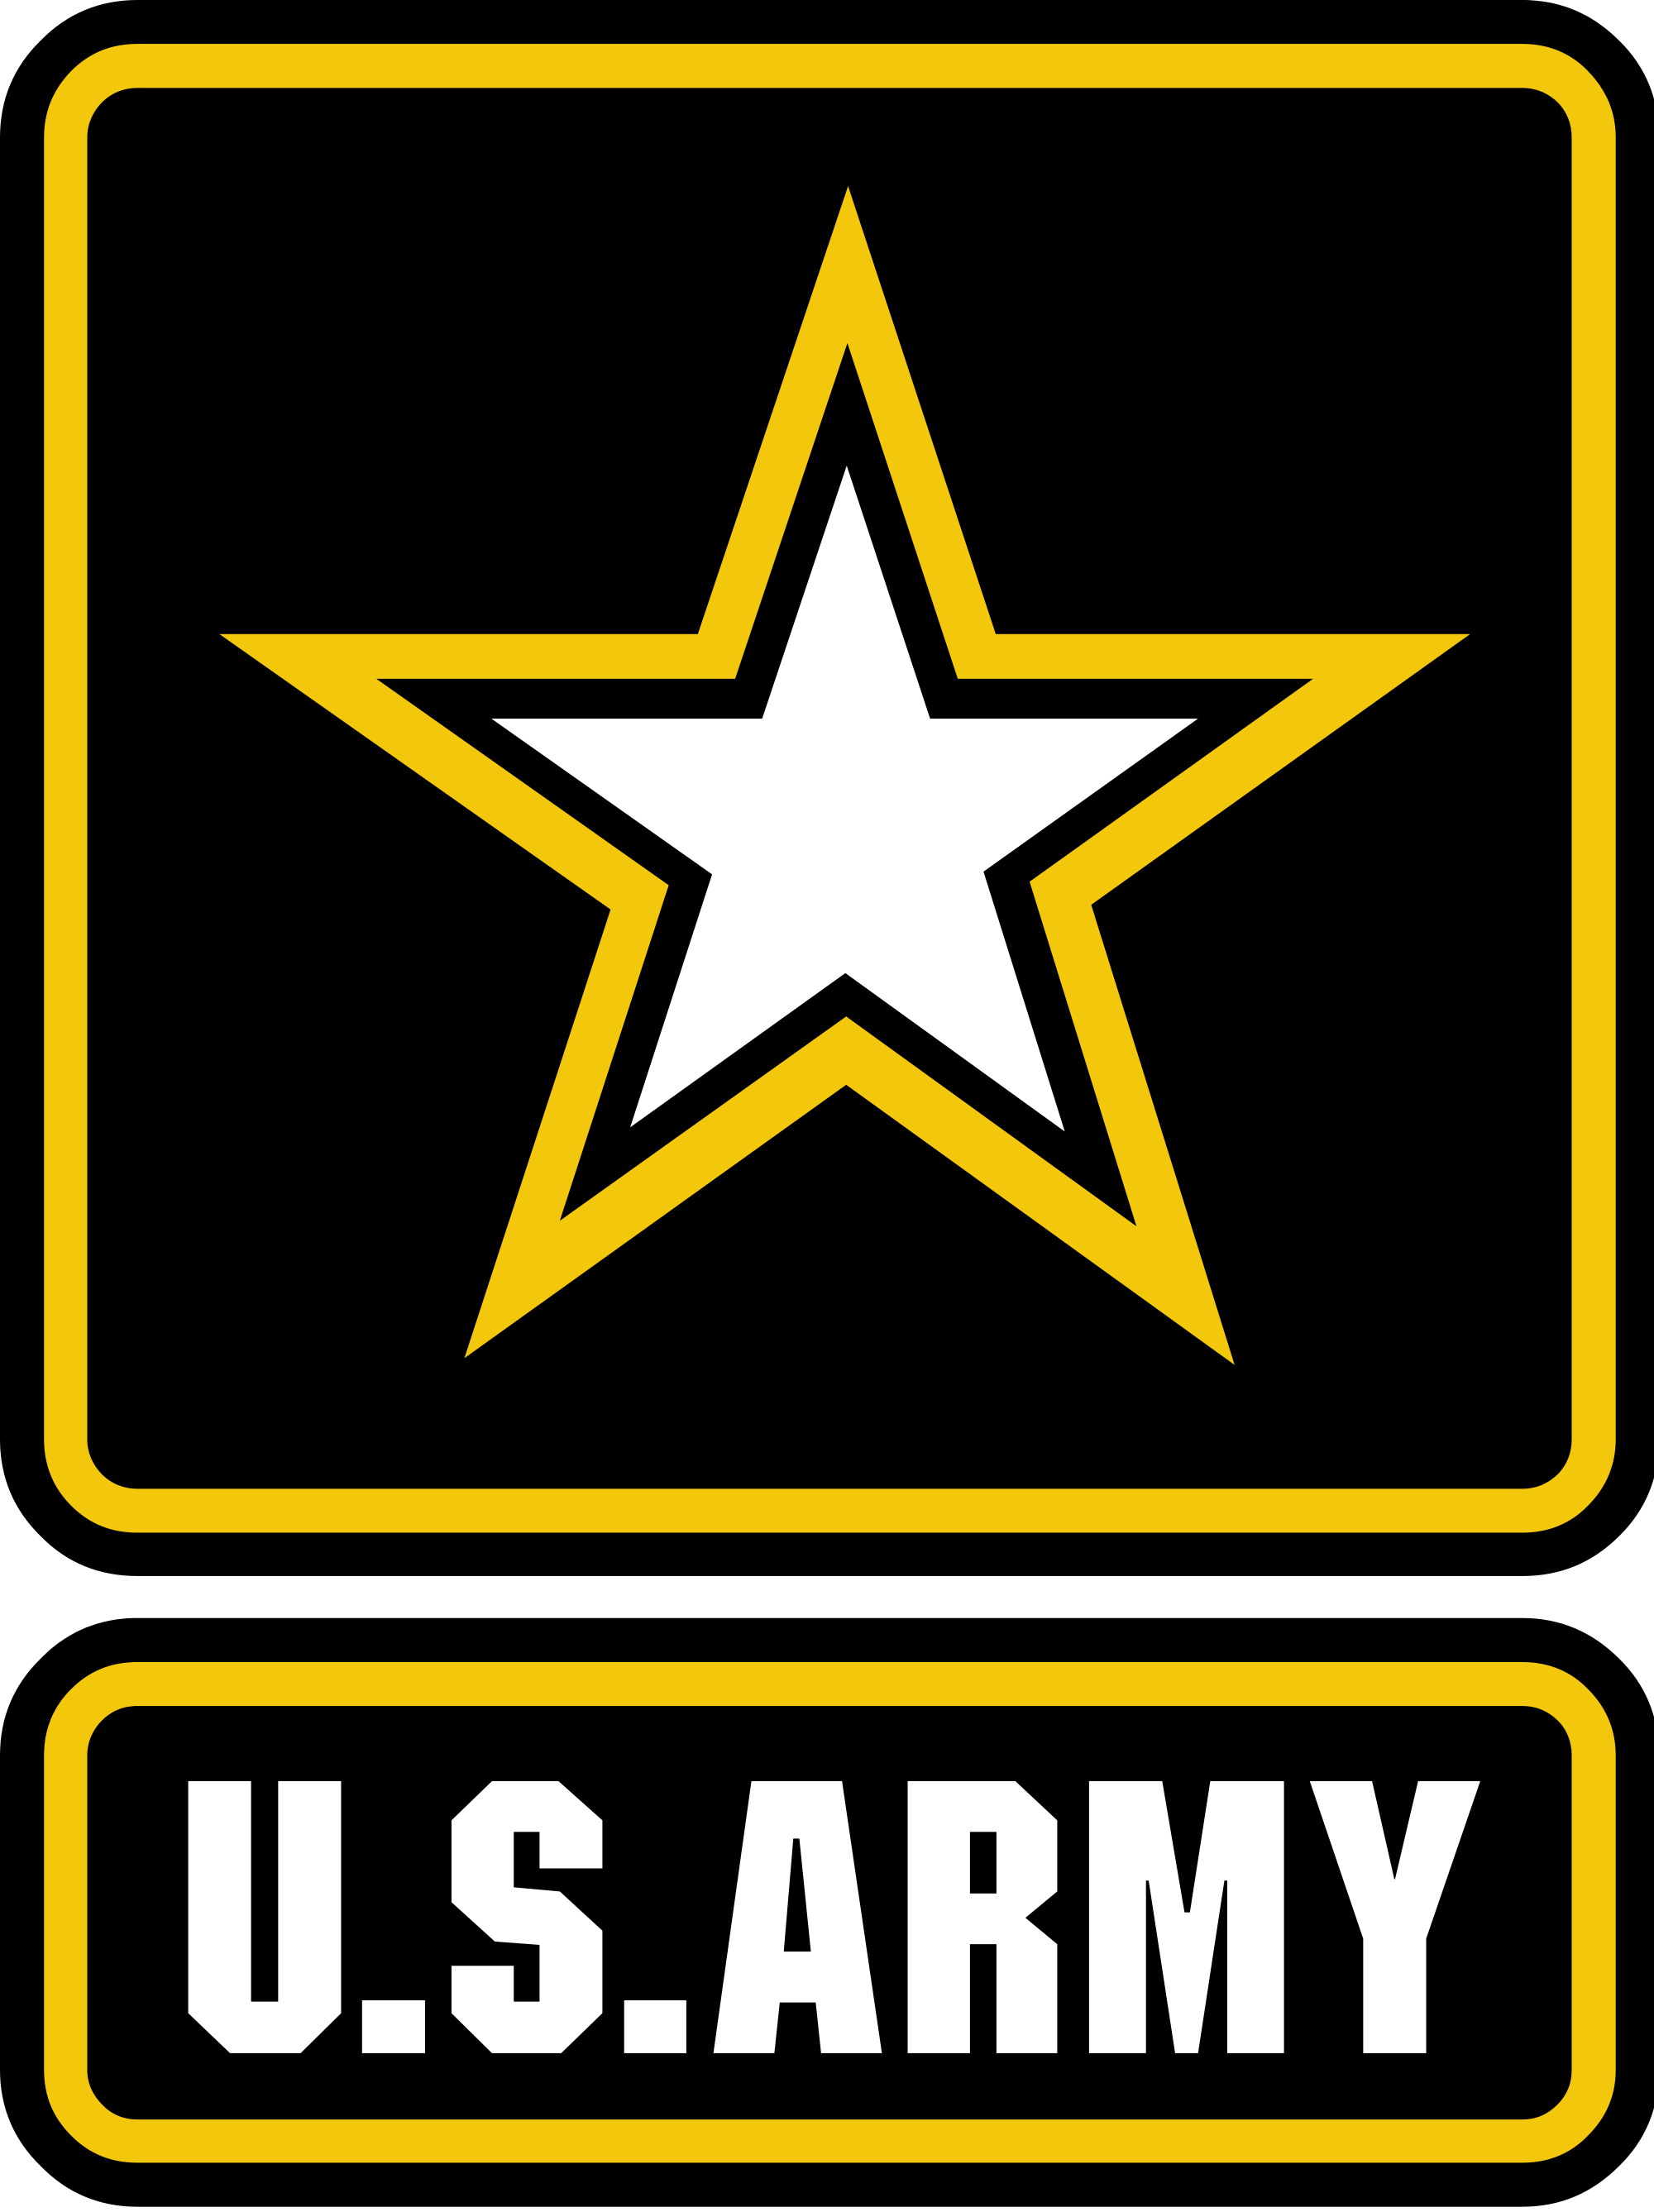 File:US Army logo.svg